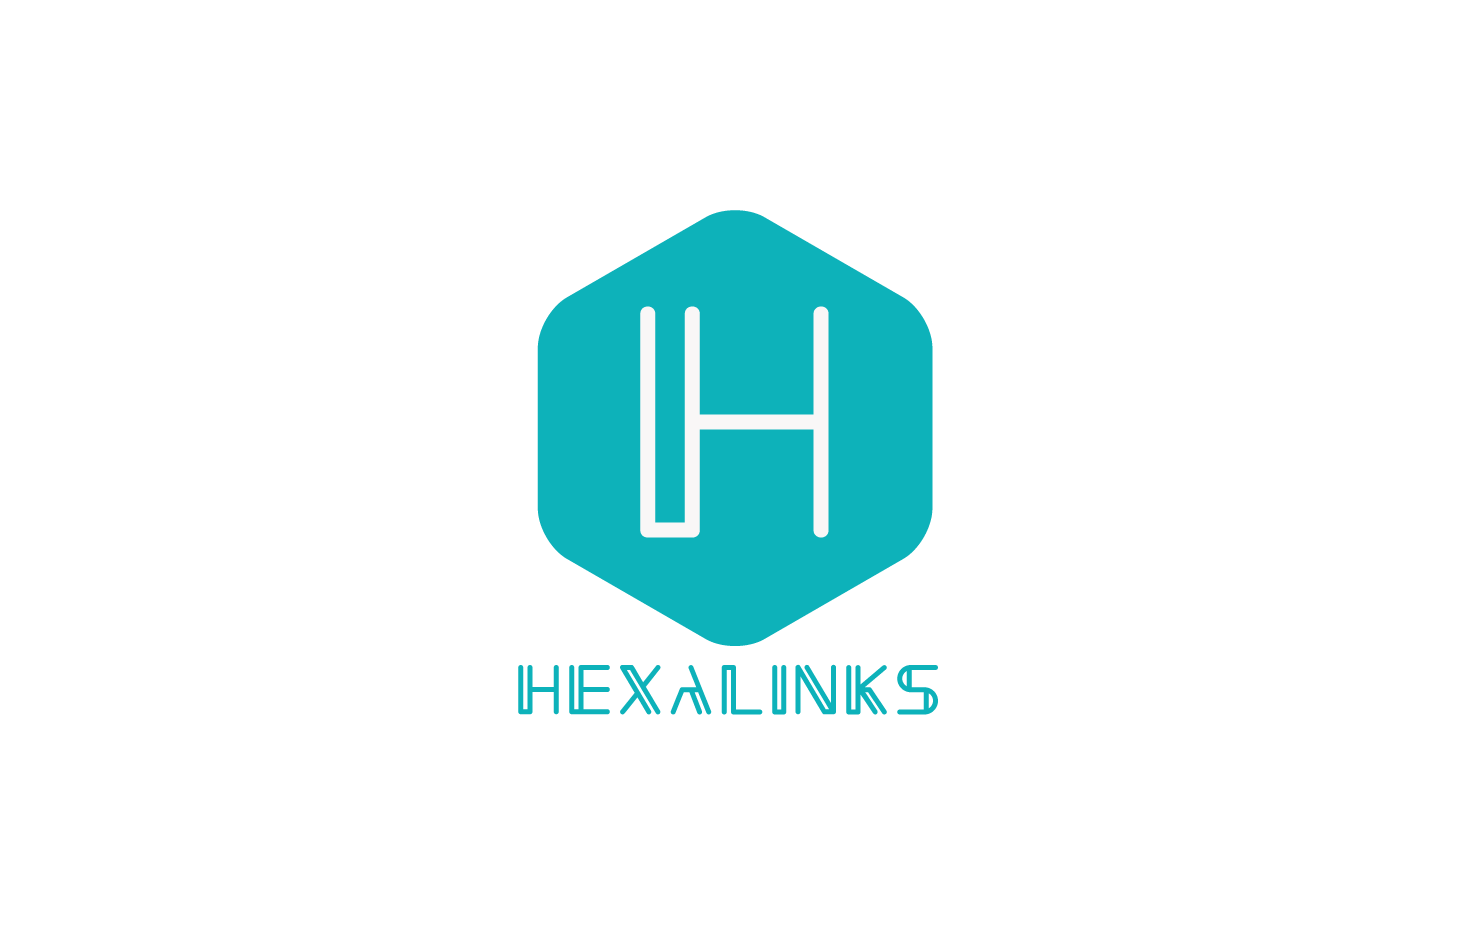 Hexalinks logo